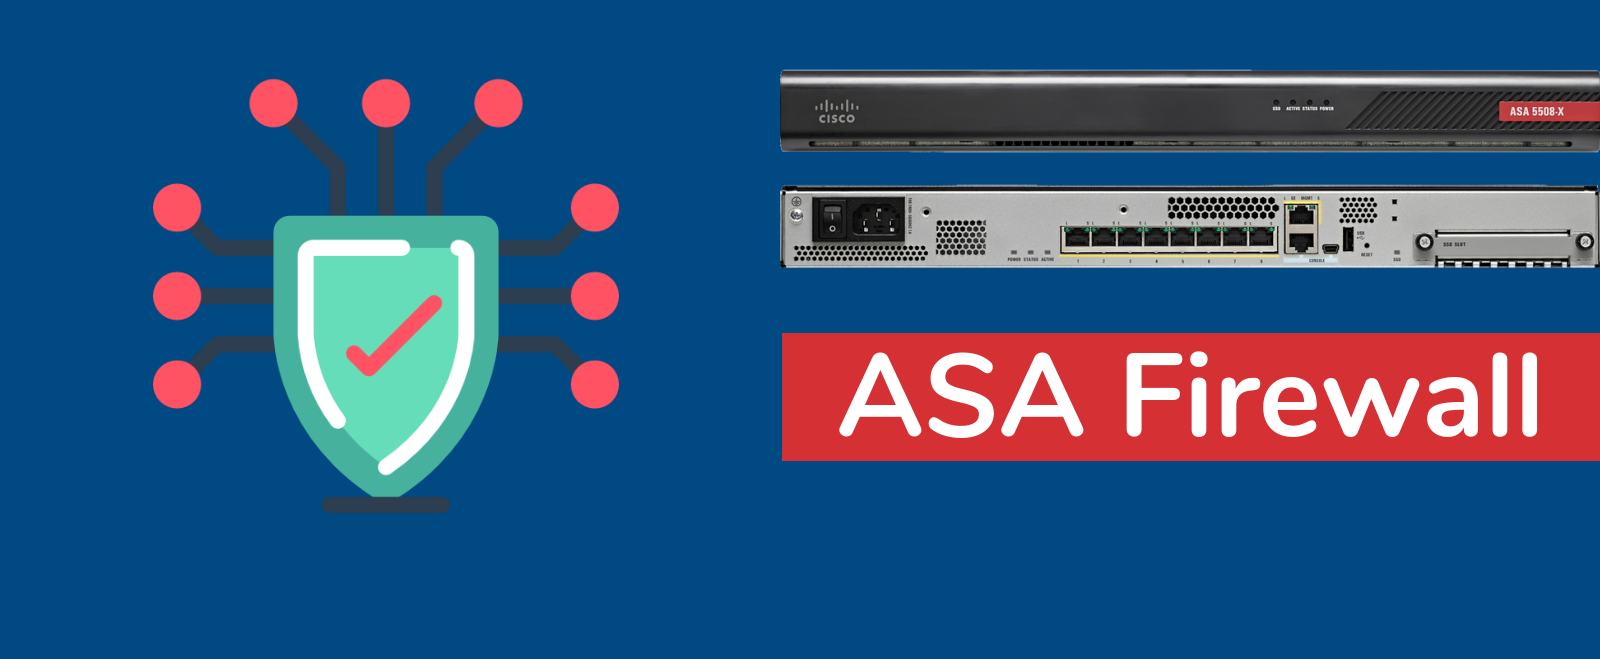 Curso Cisco ASA Firewall